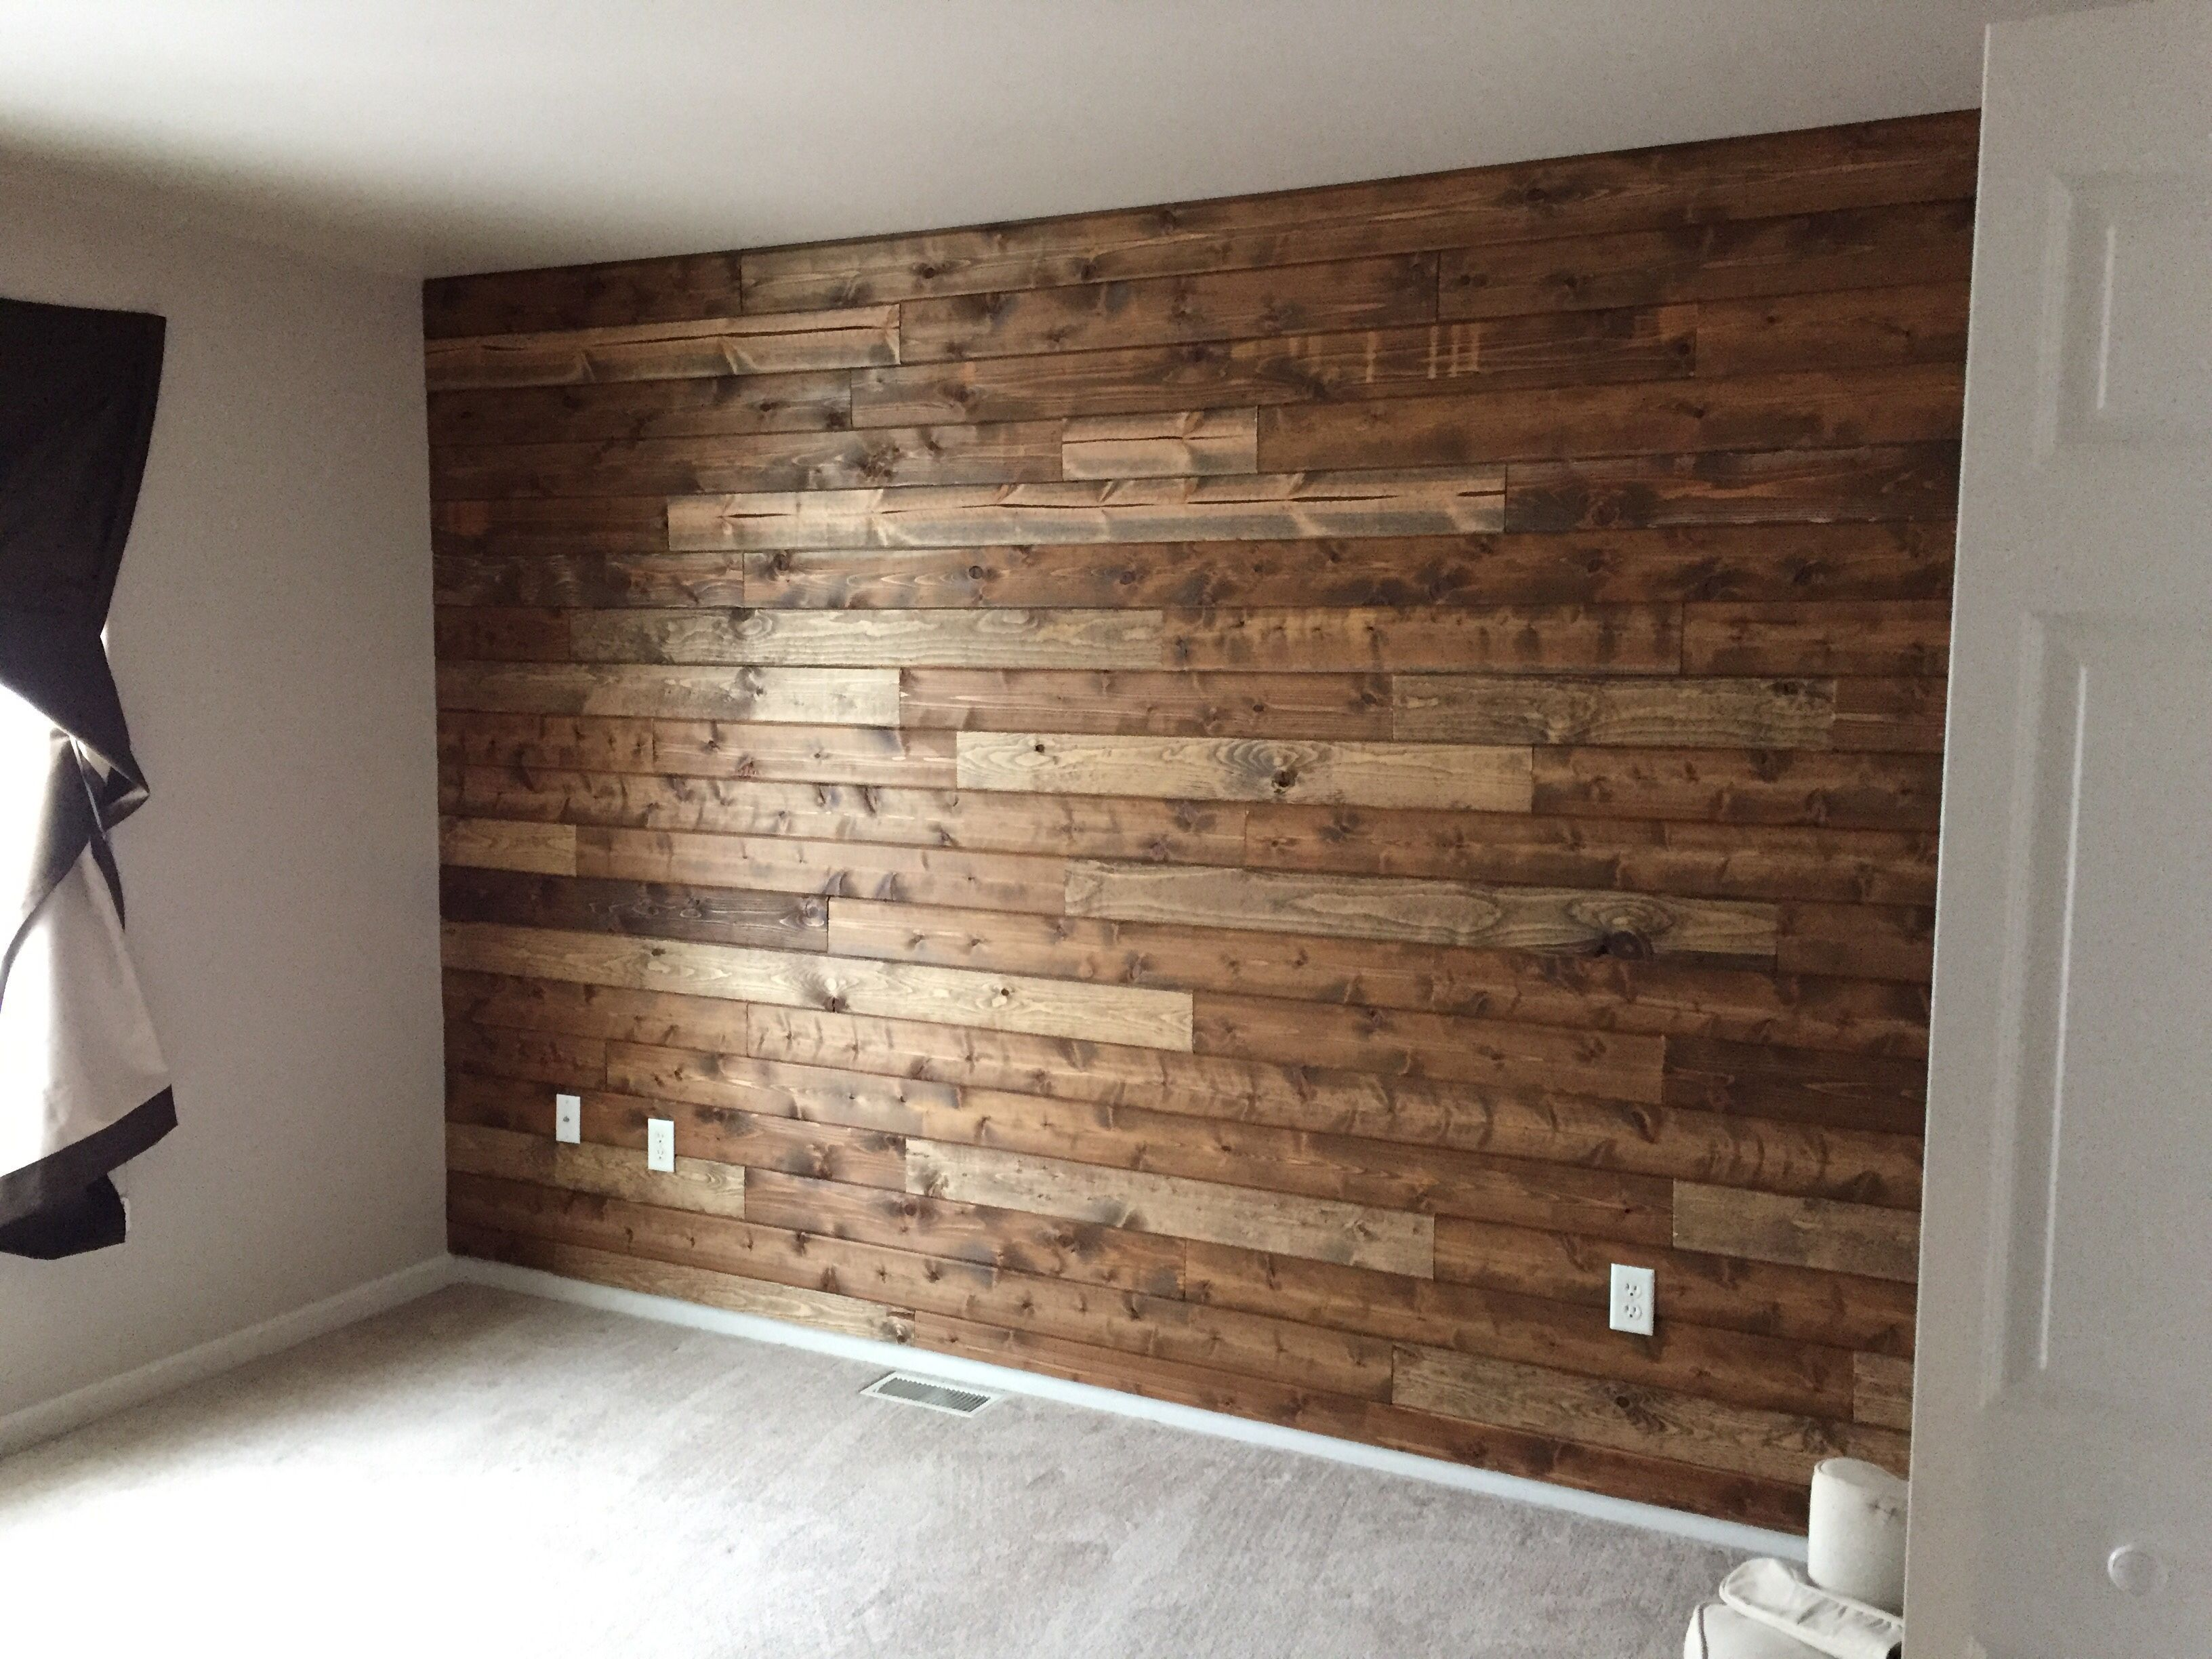 12 Various Accent Wall Ideas (Gallery) for Your Sweet Home